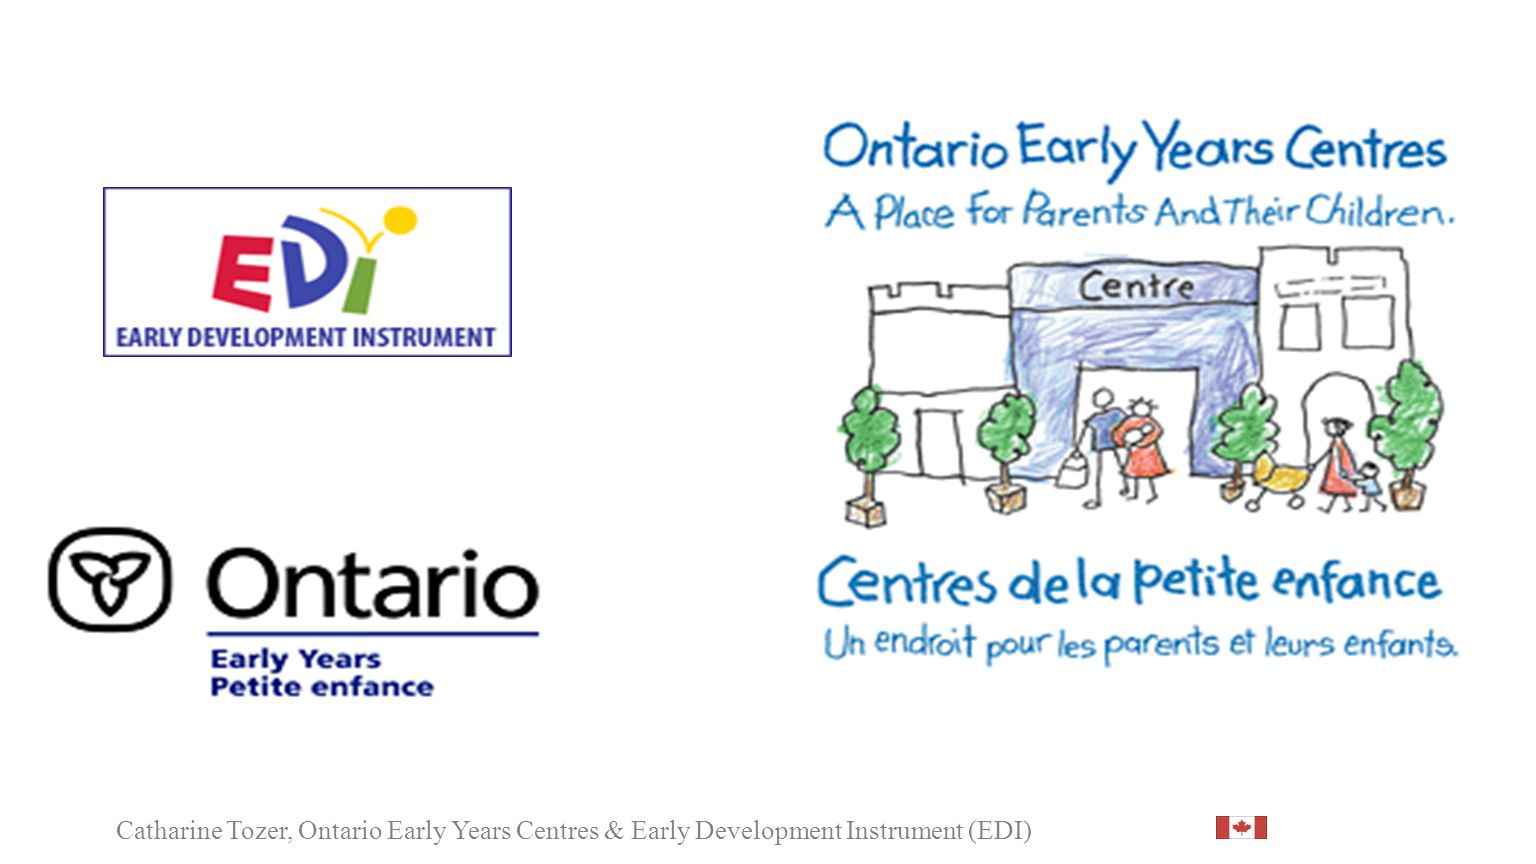 Catharine Tozer, Ontario Early Years Centres & Early Development Instrument (EDI)